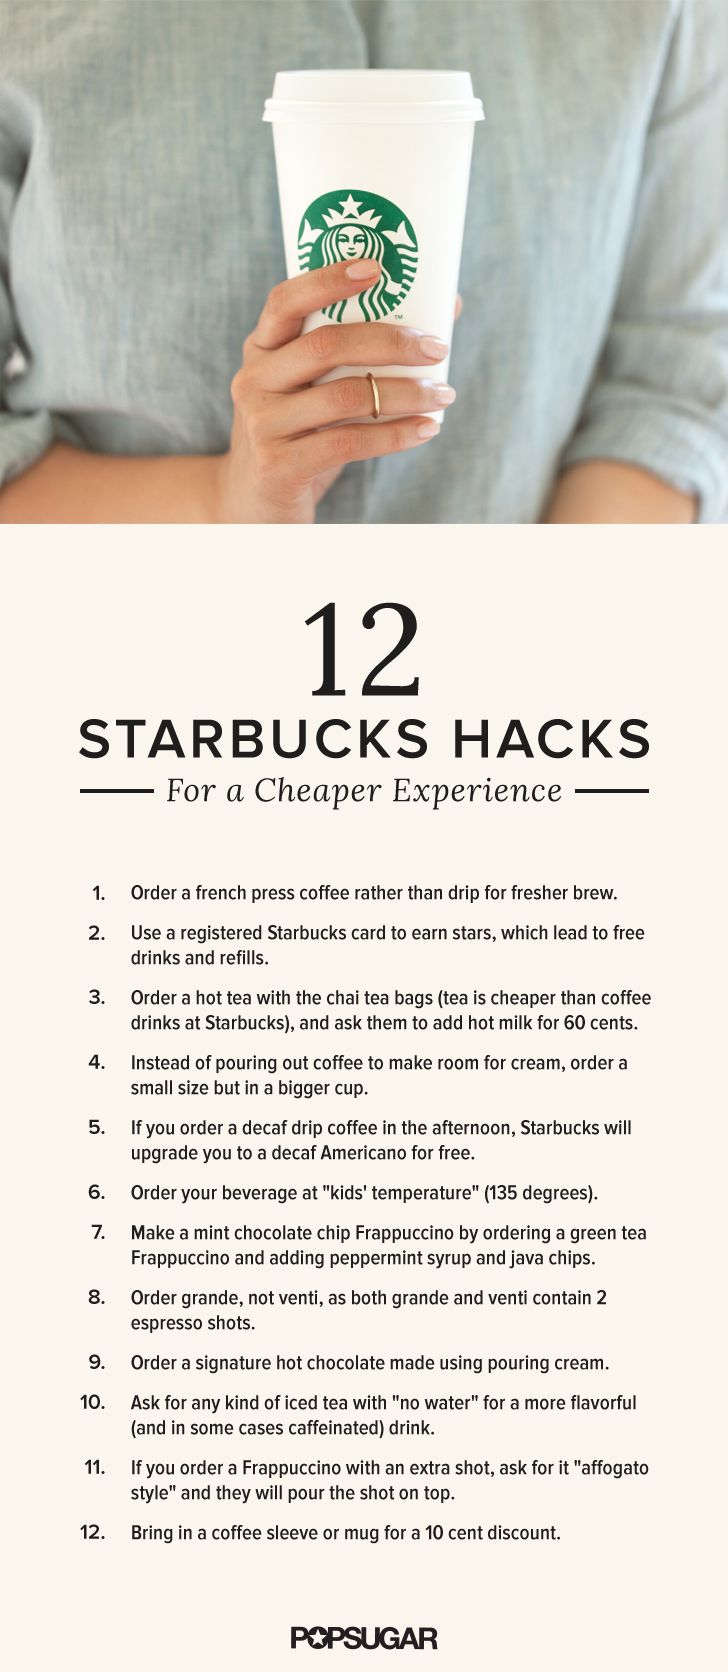 "Thanks to the knowledgeable Starbucks fanatics on Quora's ""What Are Some Favorite Starbucks Hacks?"" thread, here are 12 tips and tricks to try on your next coffee run."